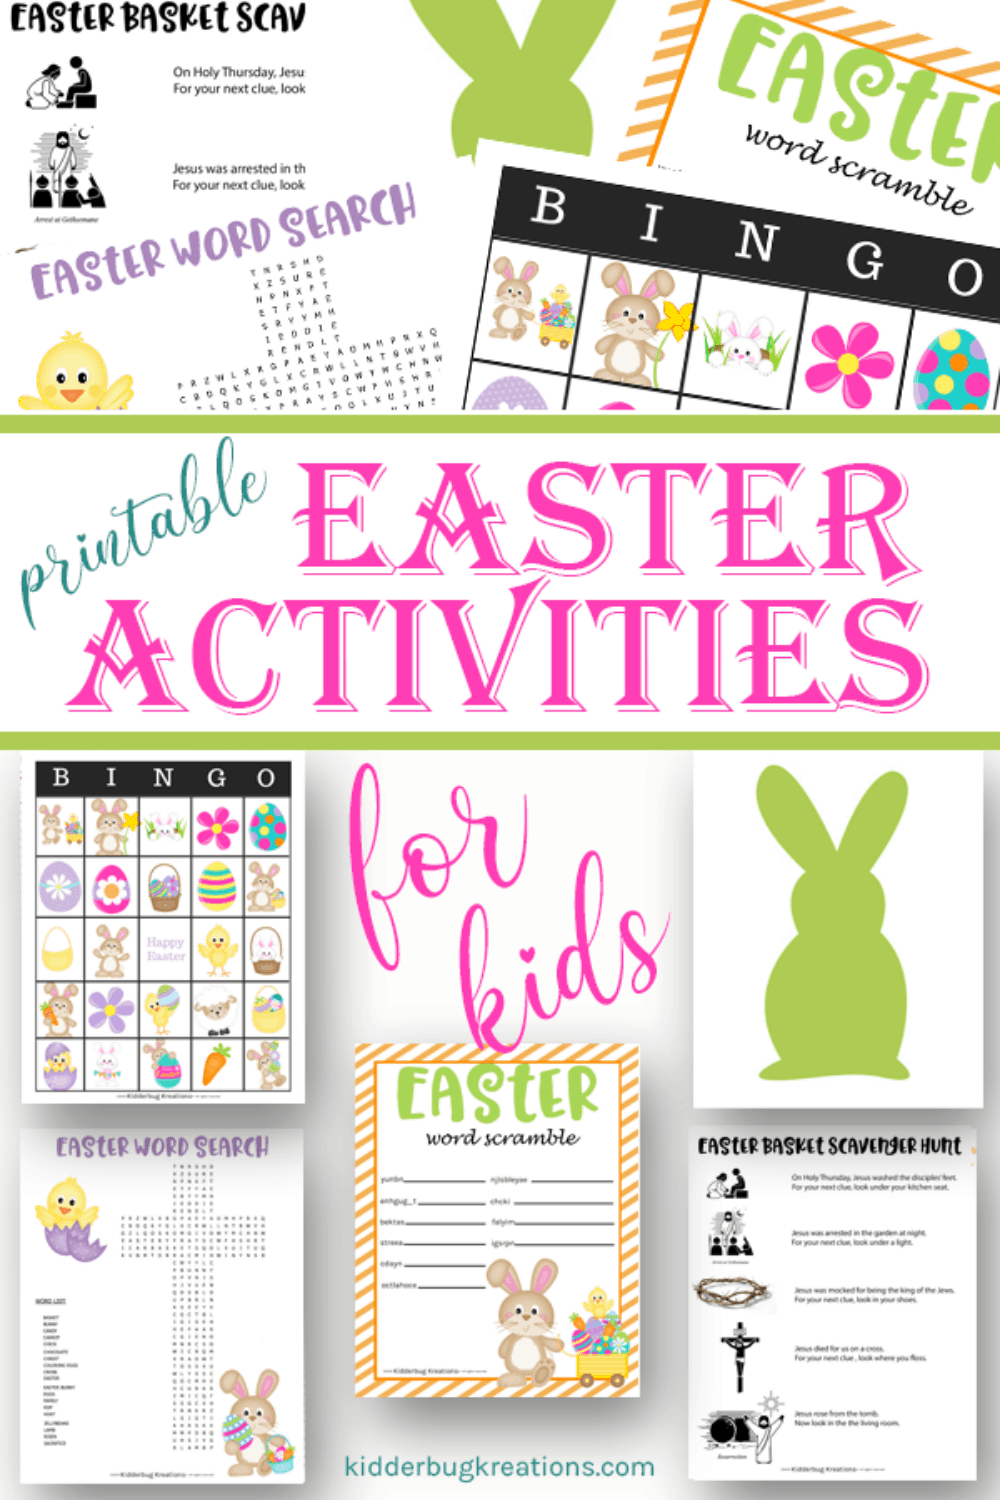 Printable Easter Activity Sheets